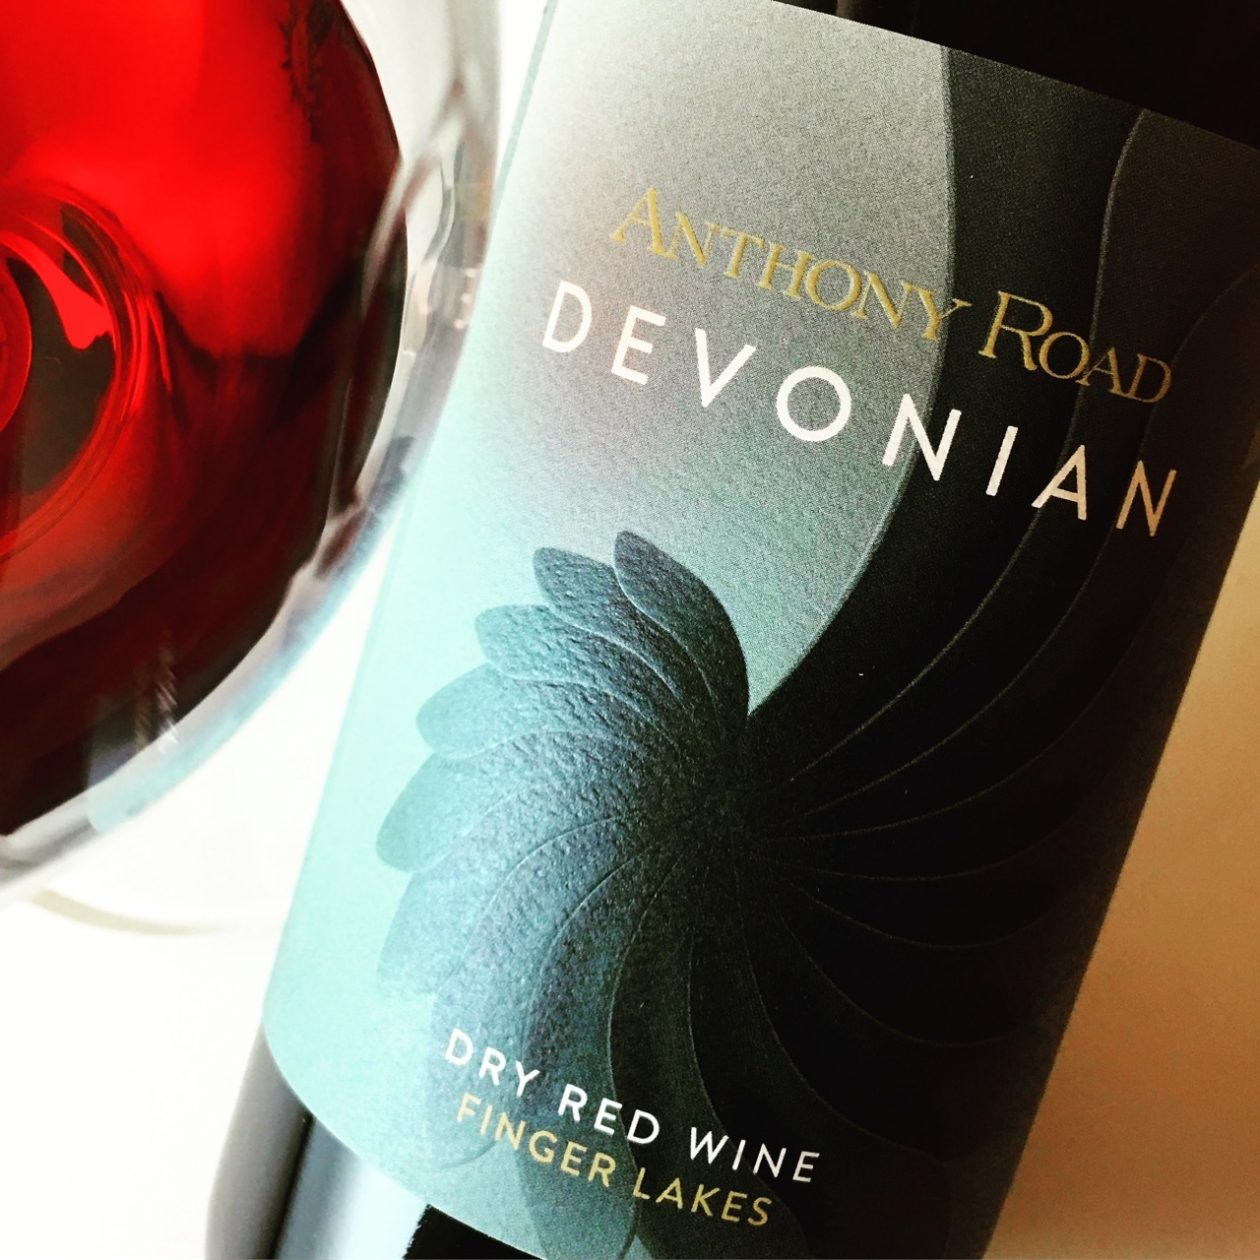 2014 Anthony Road Red Blend Devonian Finger Lakes